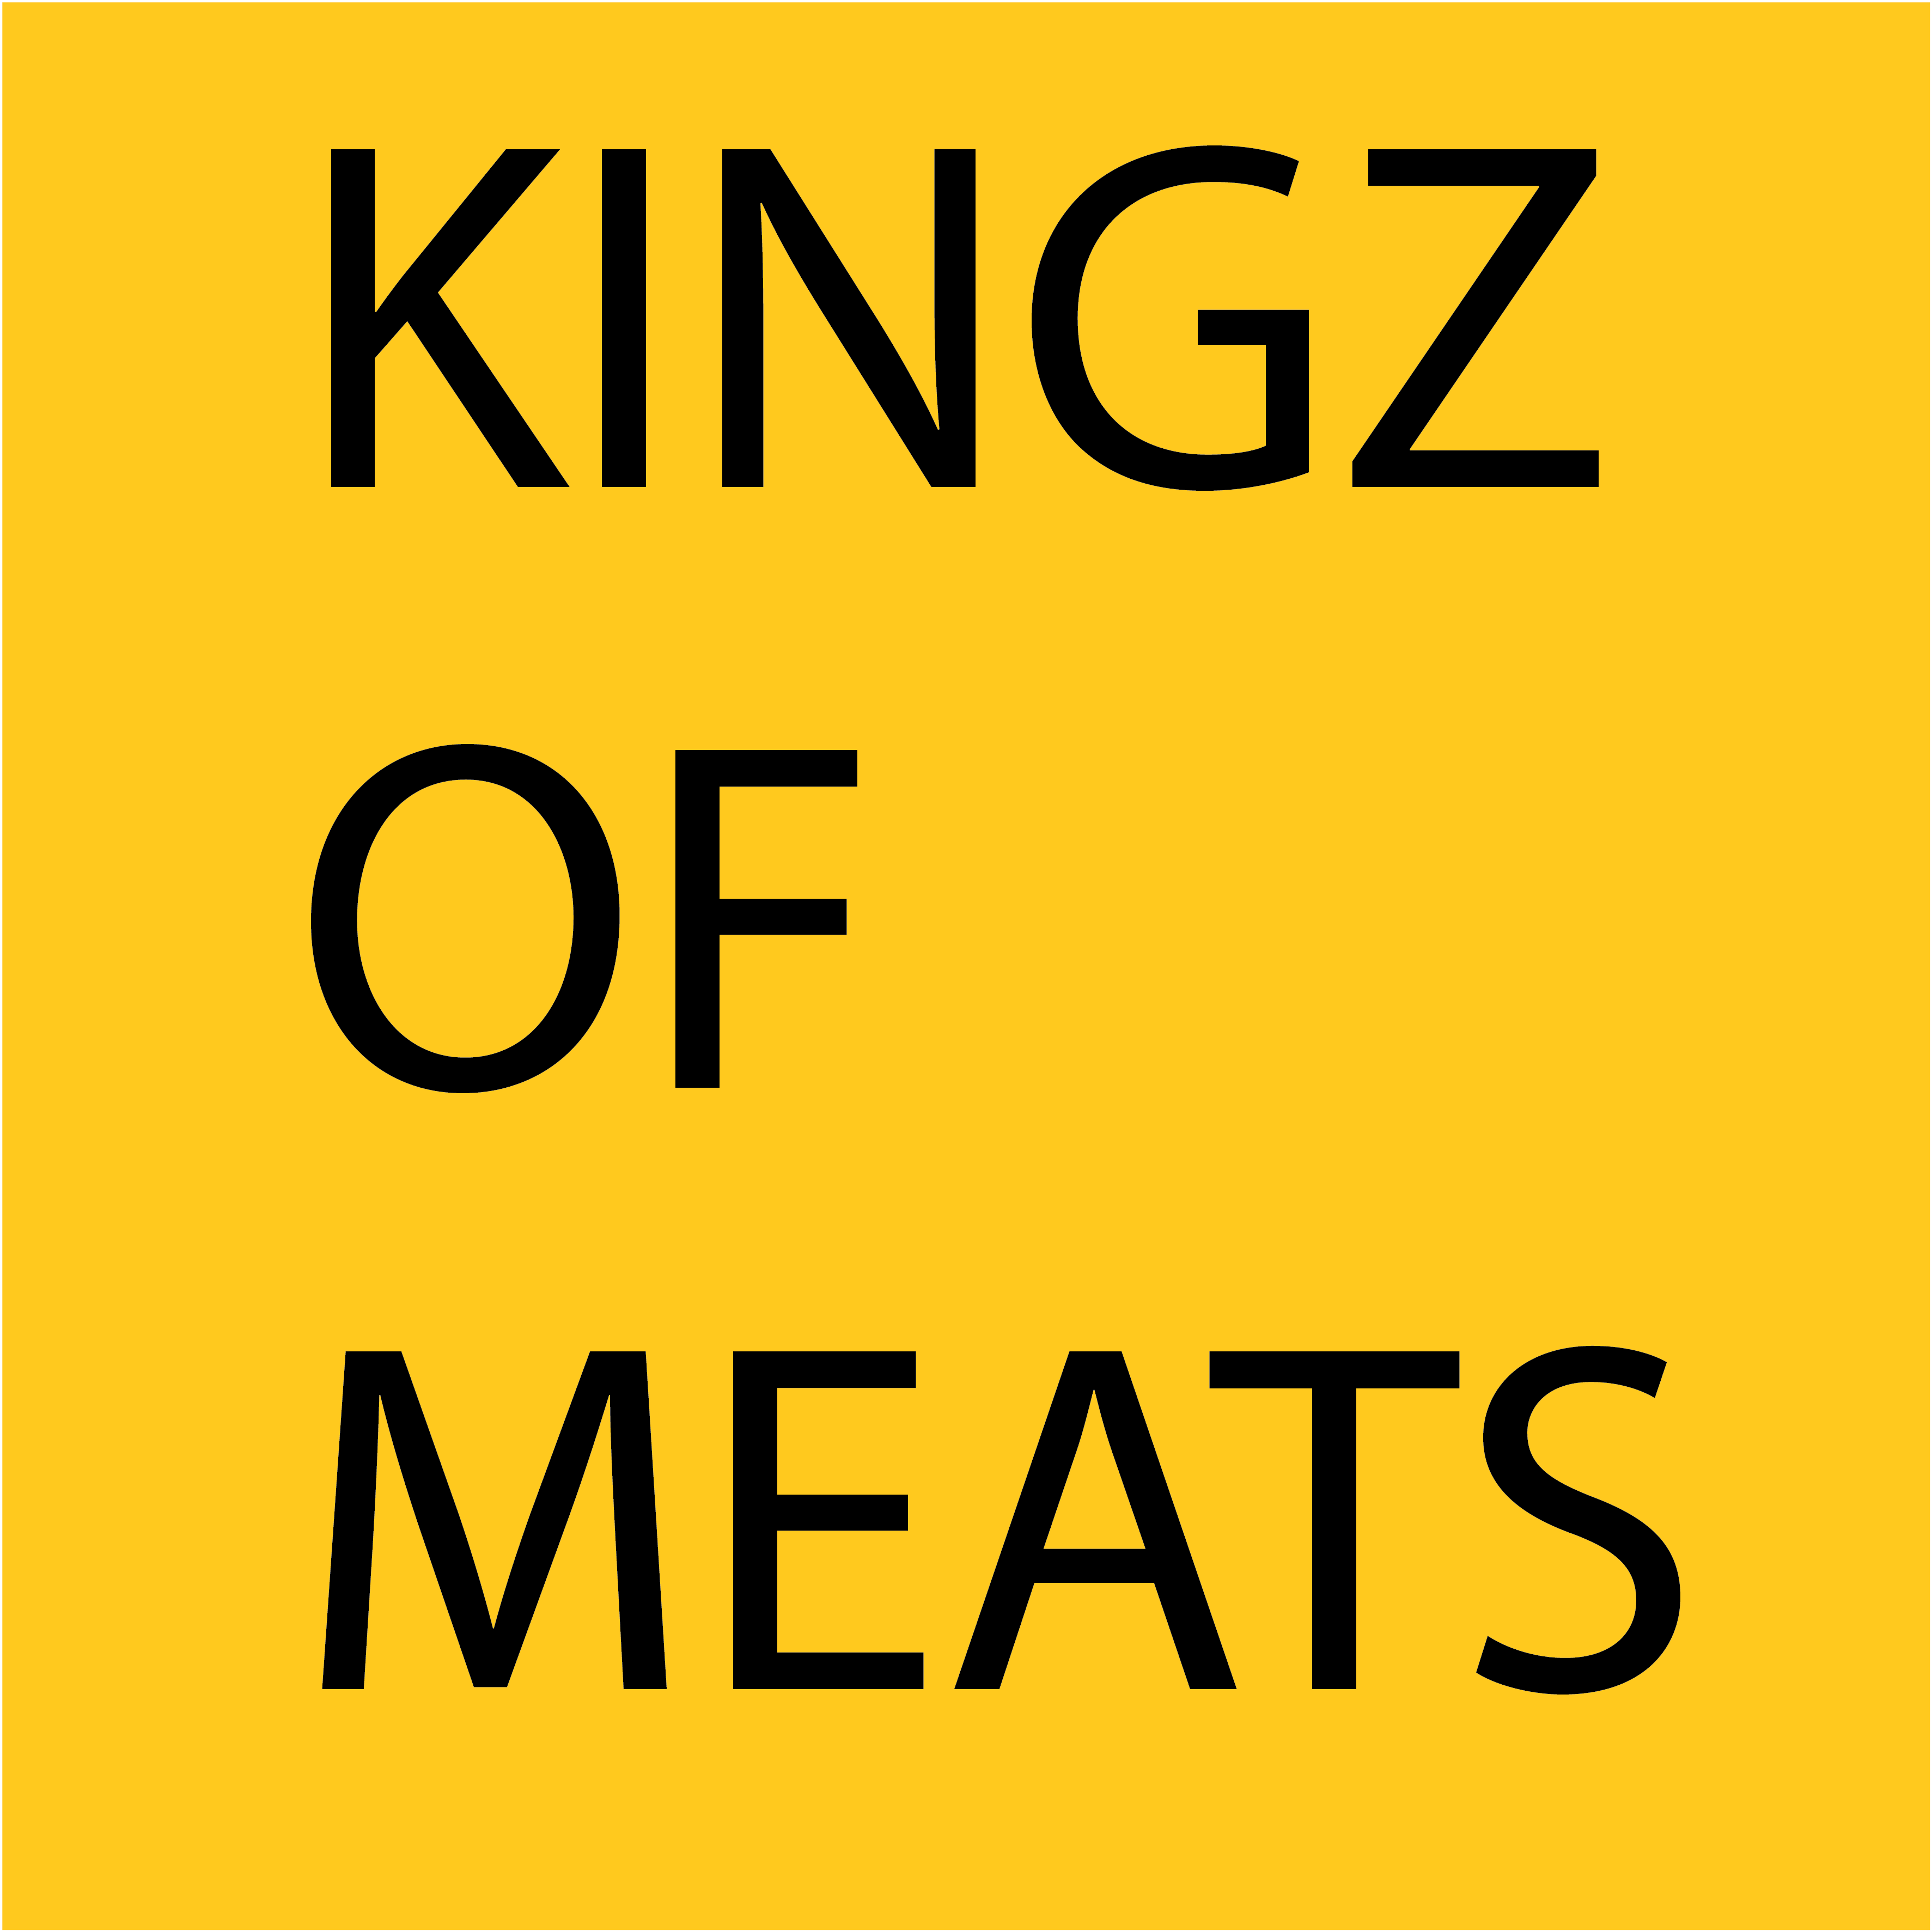 Kingz of Meats Cafe